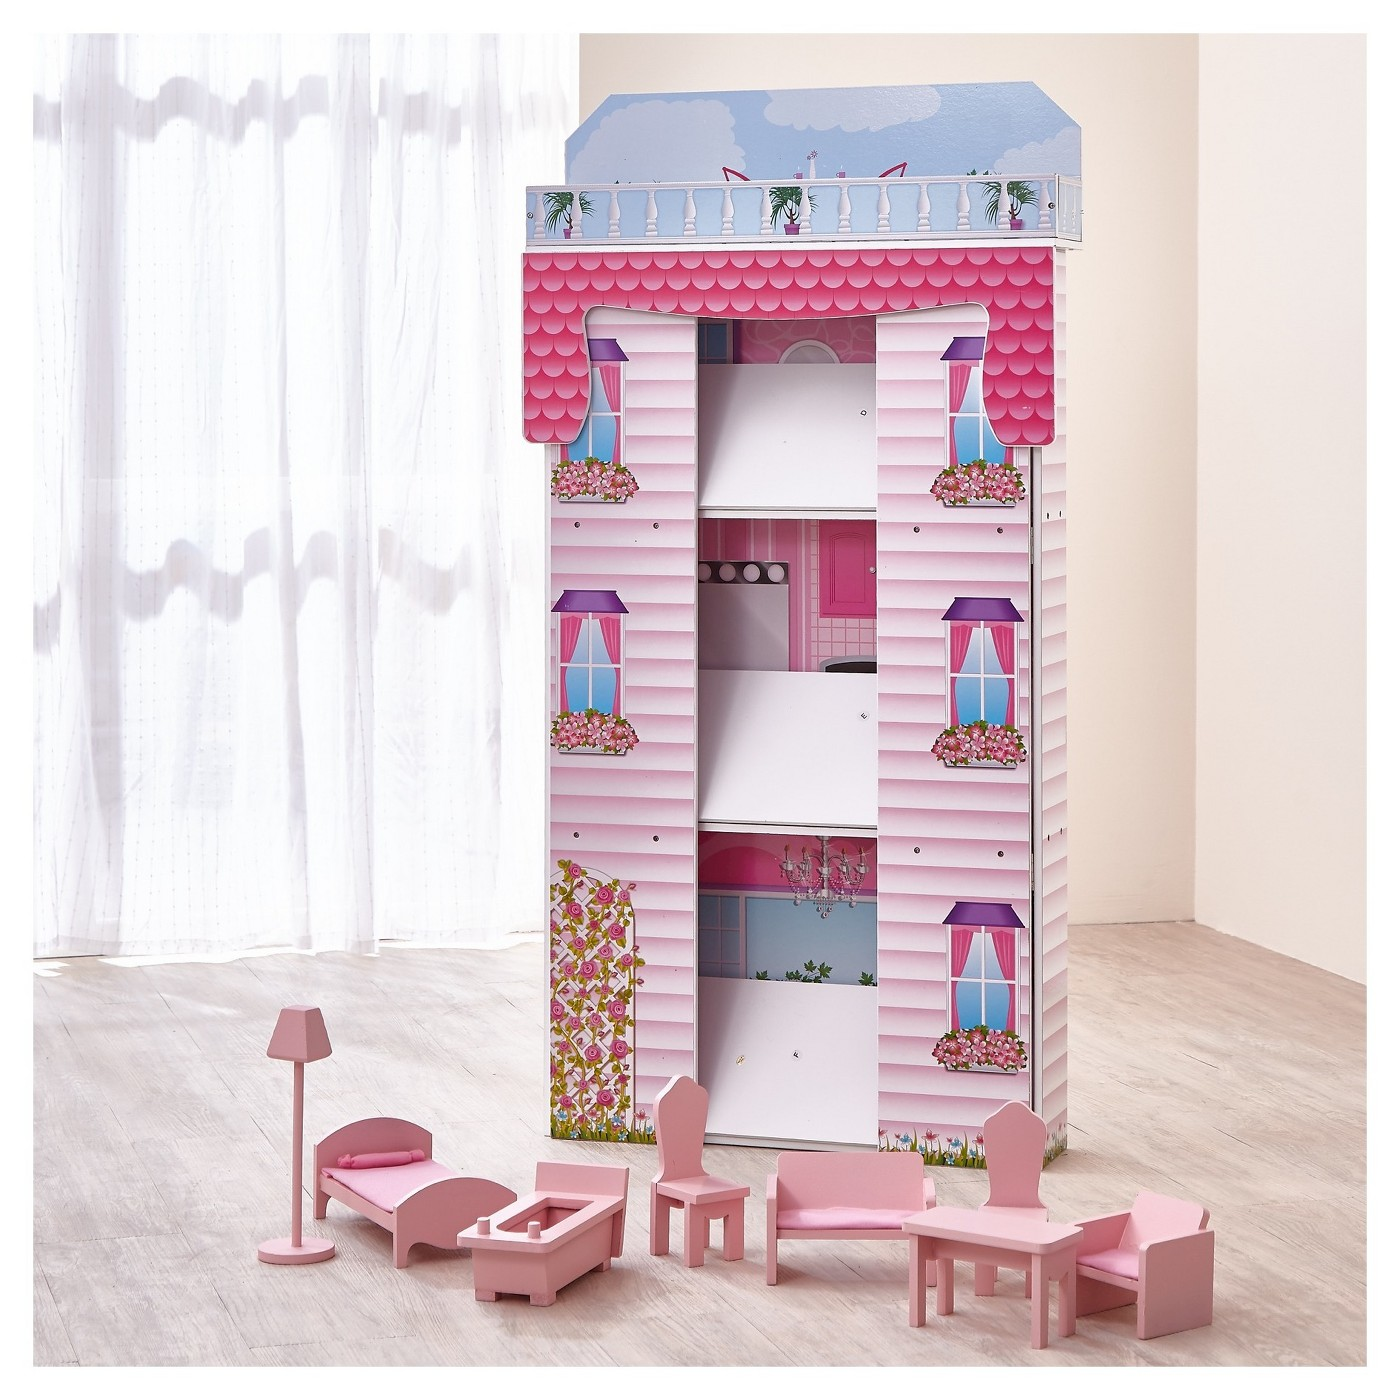 Teamson Kids Glamour Mansion Foldin Doll House - image 3 of 13